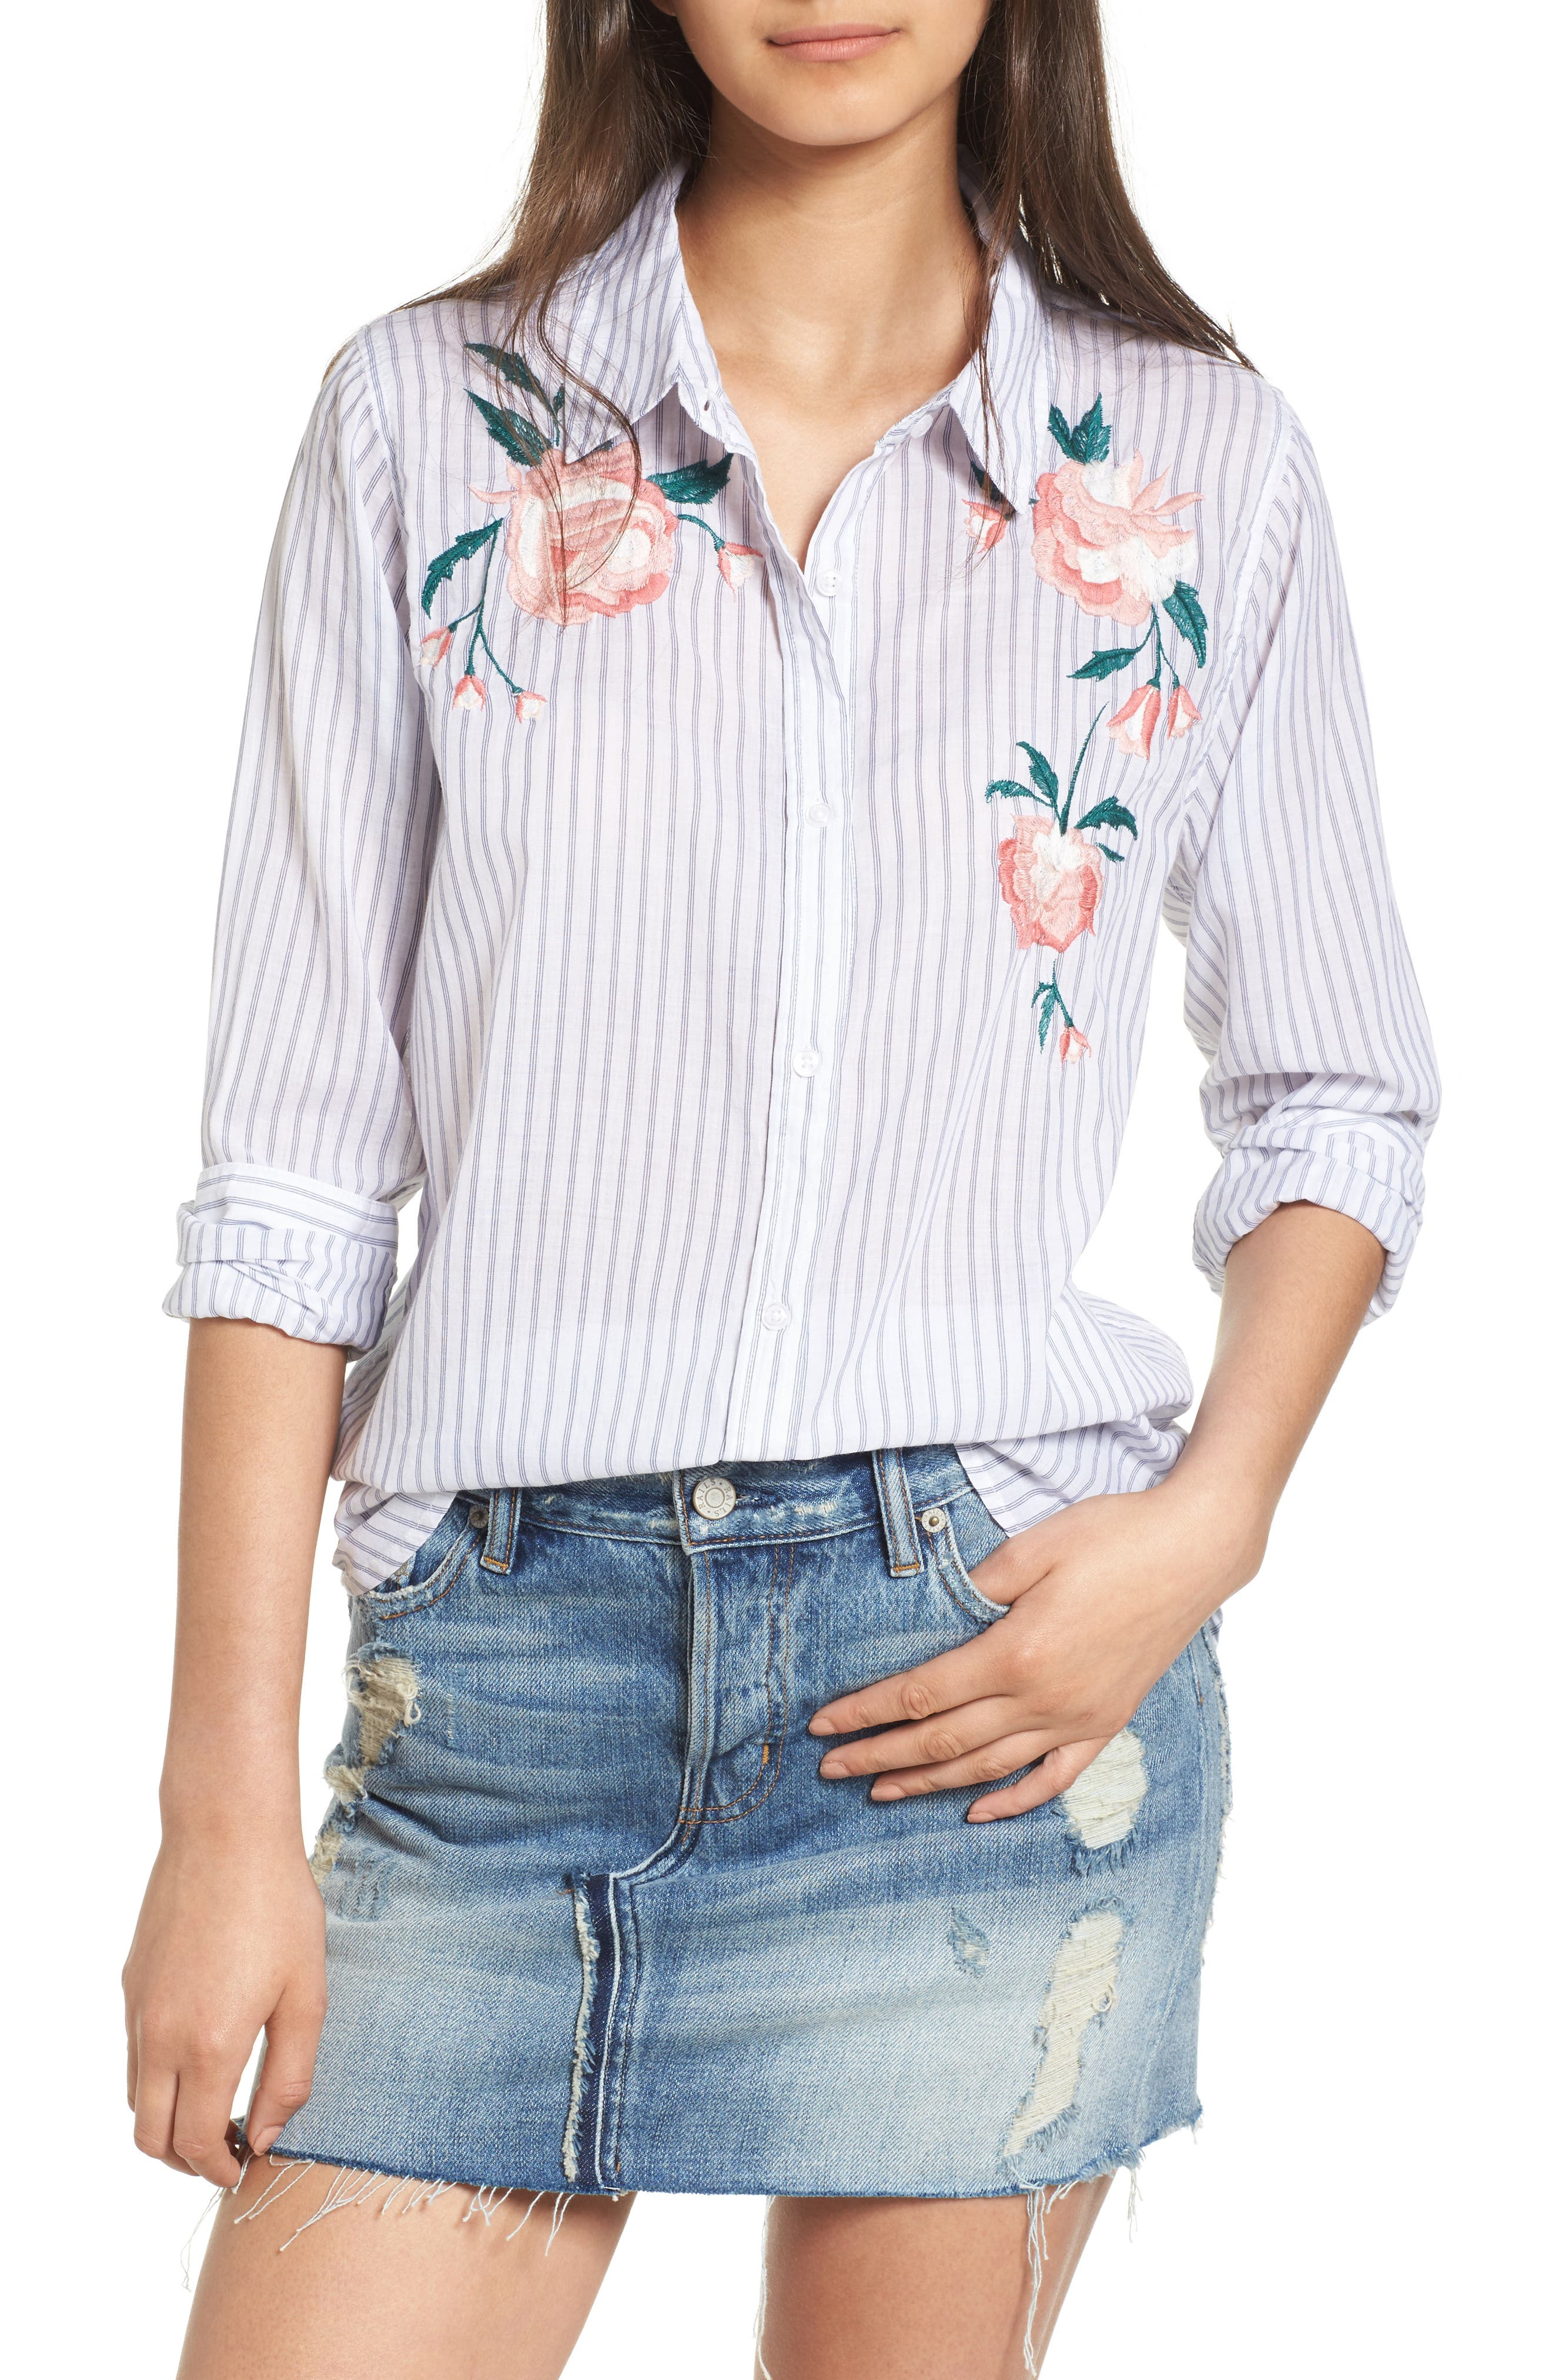 Nevin Embroidered Shirt,                             Main thumbnail 1, color,                             Stripe Pink Floral Embroidery